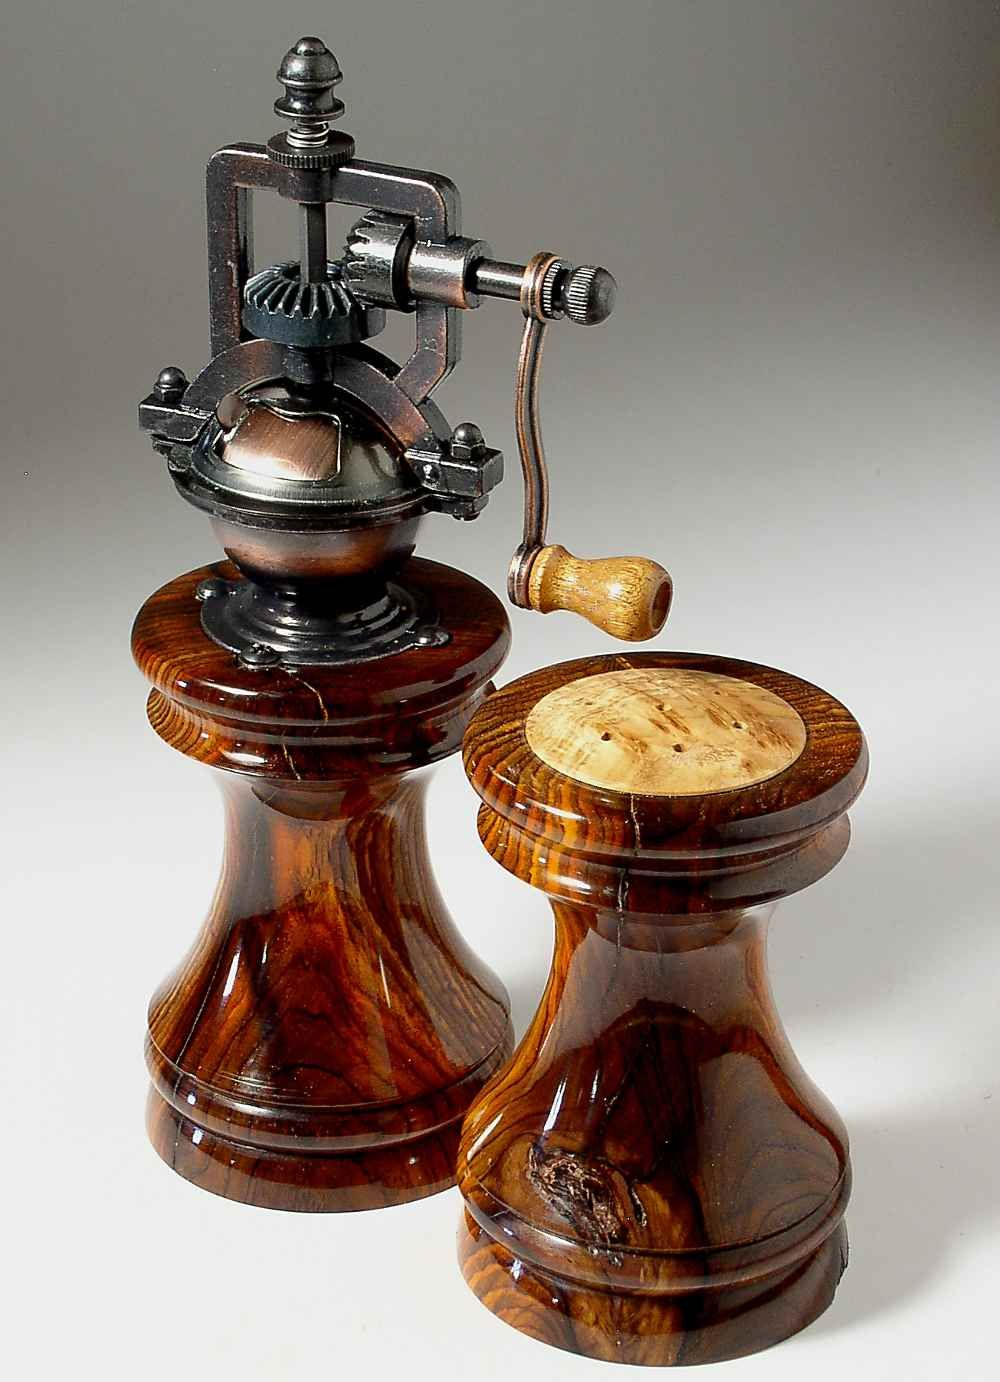 Antique Series Salt Shaker Peppermill Set In French